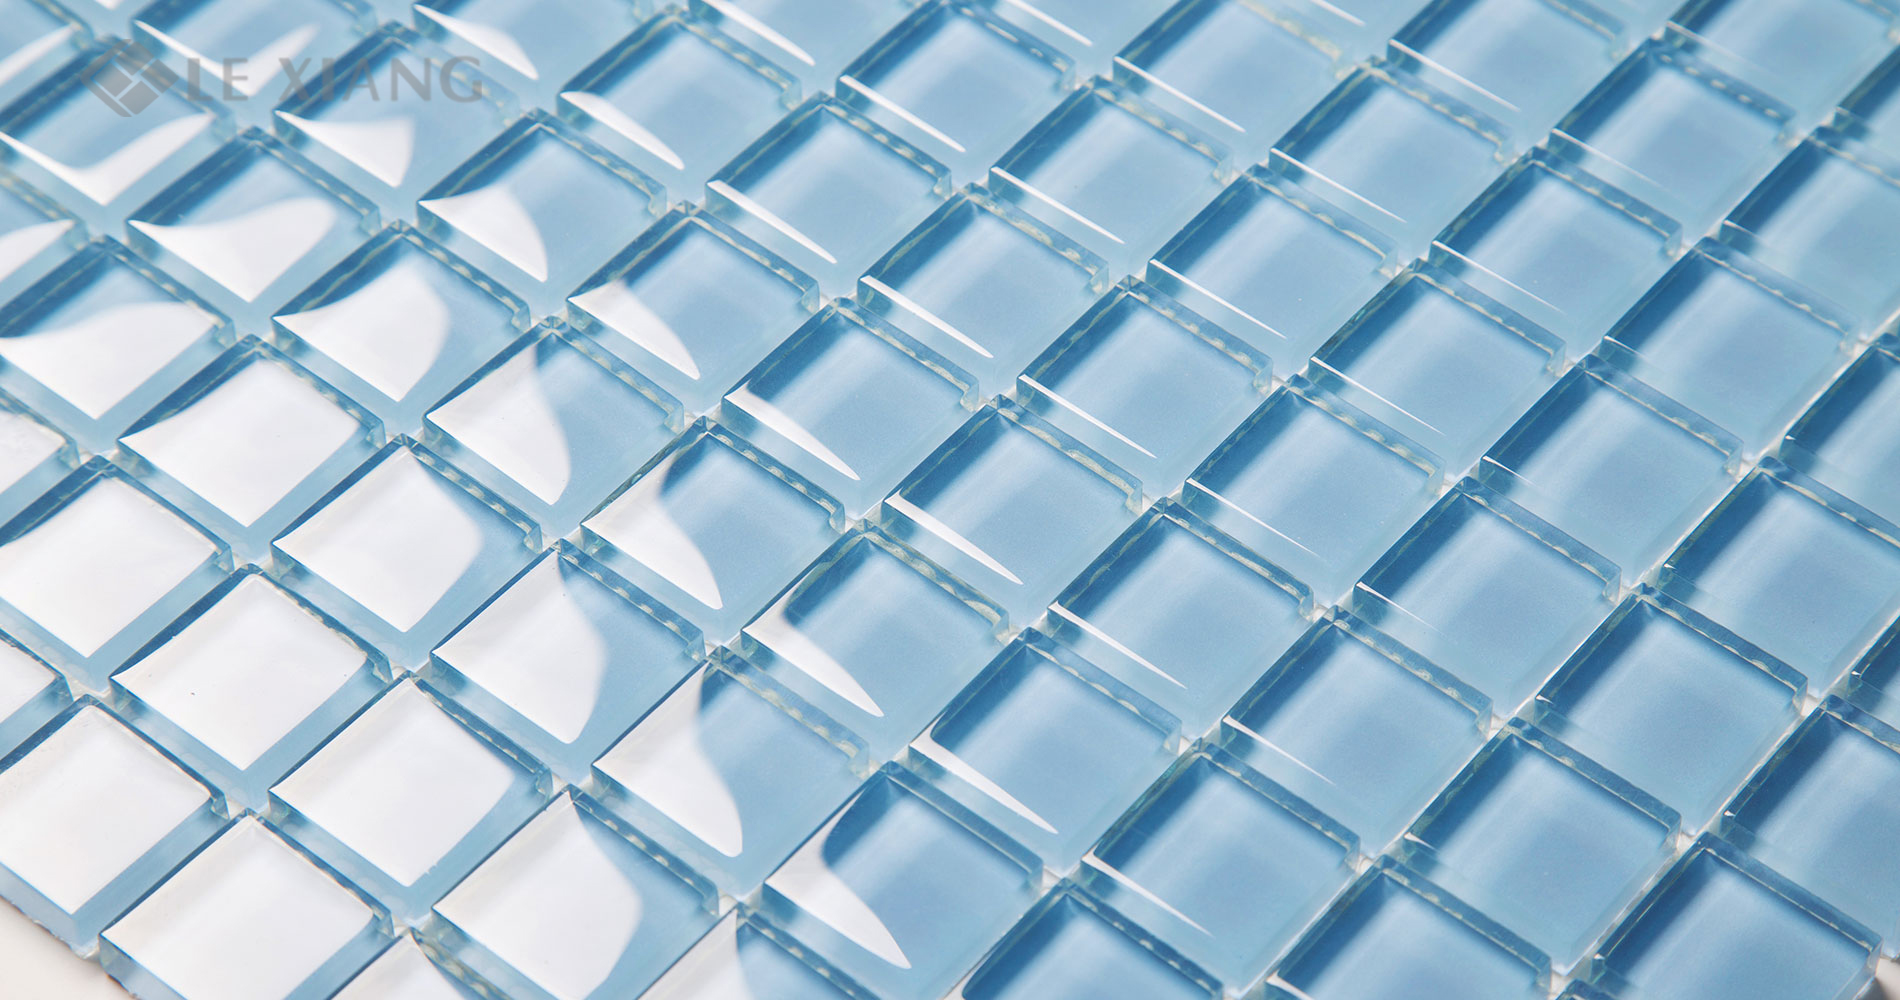 25mm-Square-Crystal-Glass-Blue-Mosaic-Tile-Backsplash-20